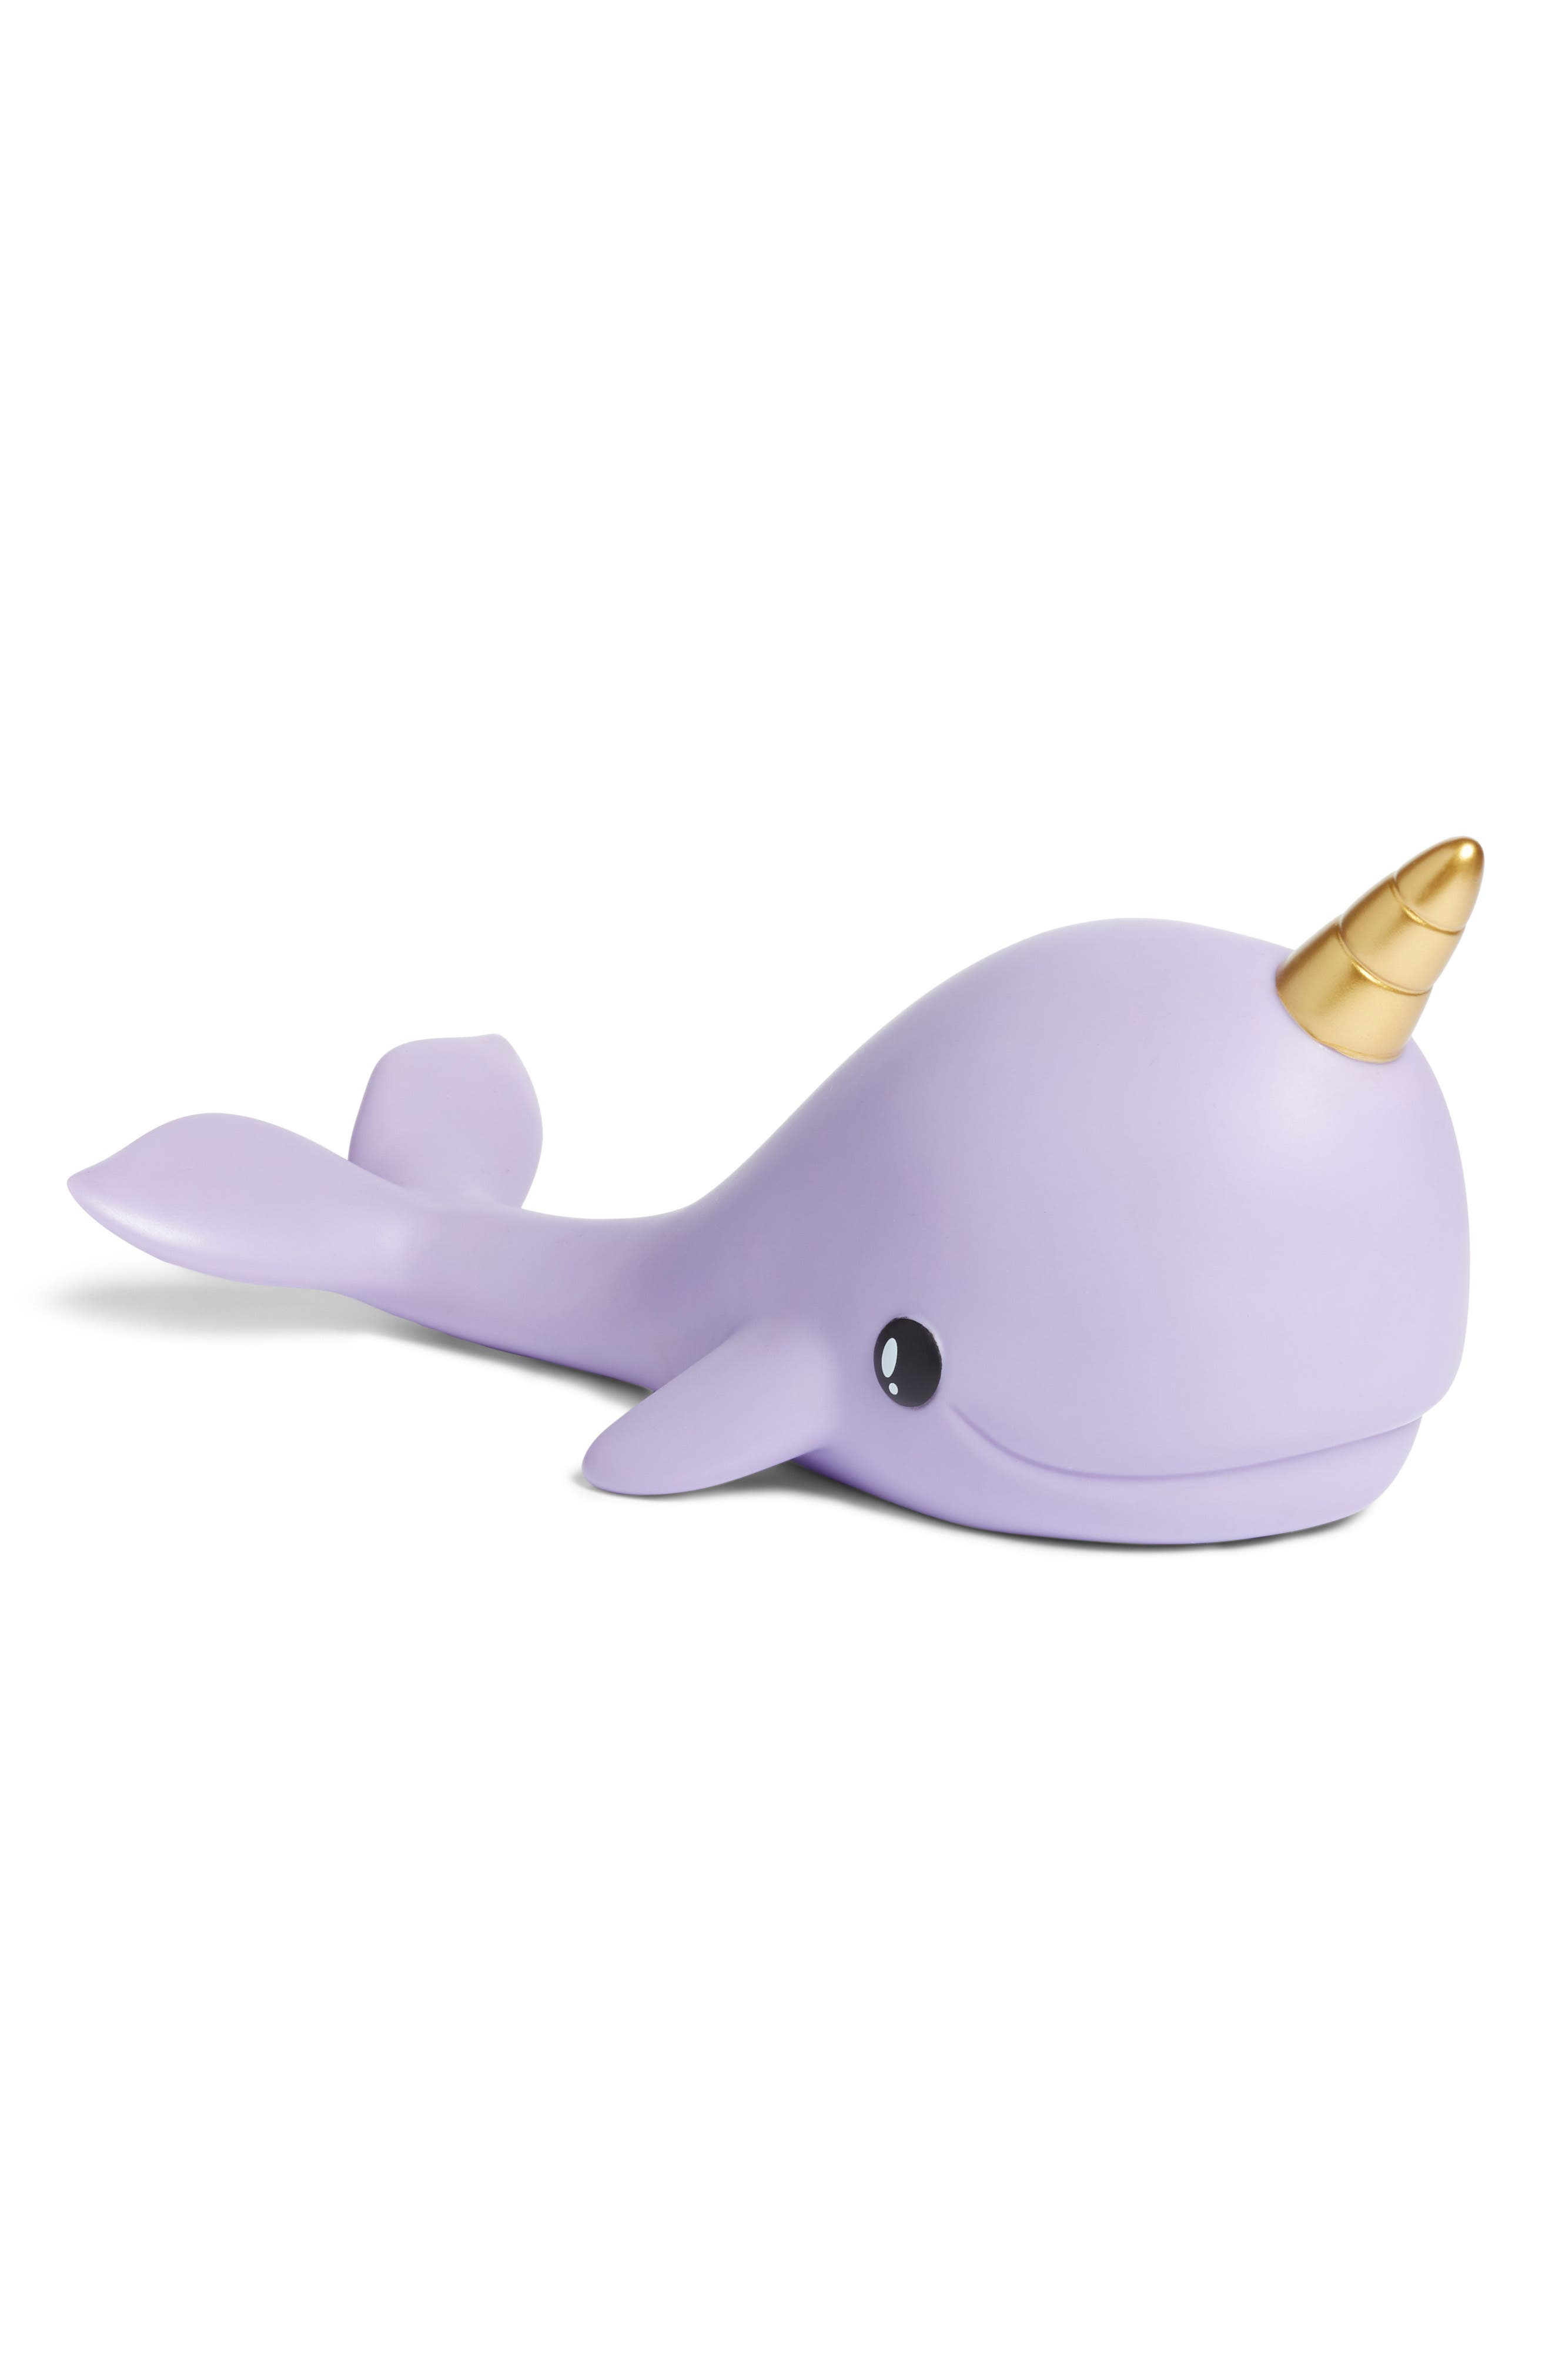 Narwhal Color Changing Night Light,                             Main thumbnail 1, color,                             PURPLE